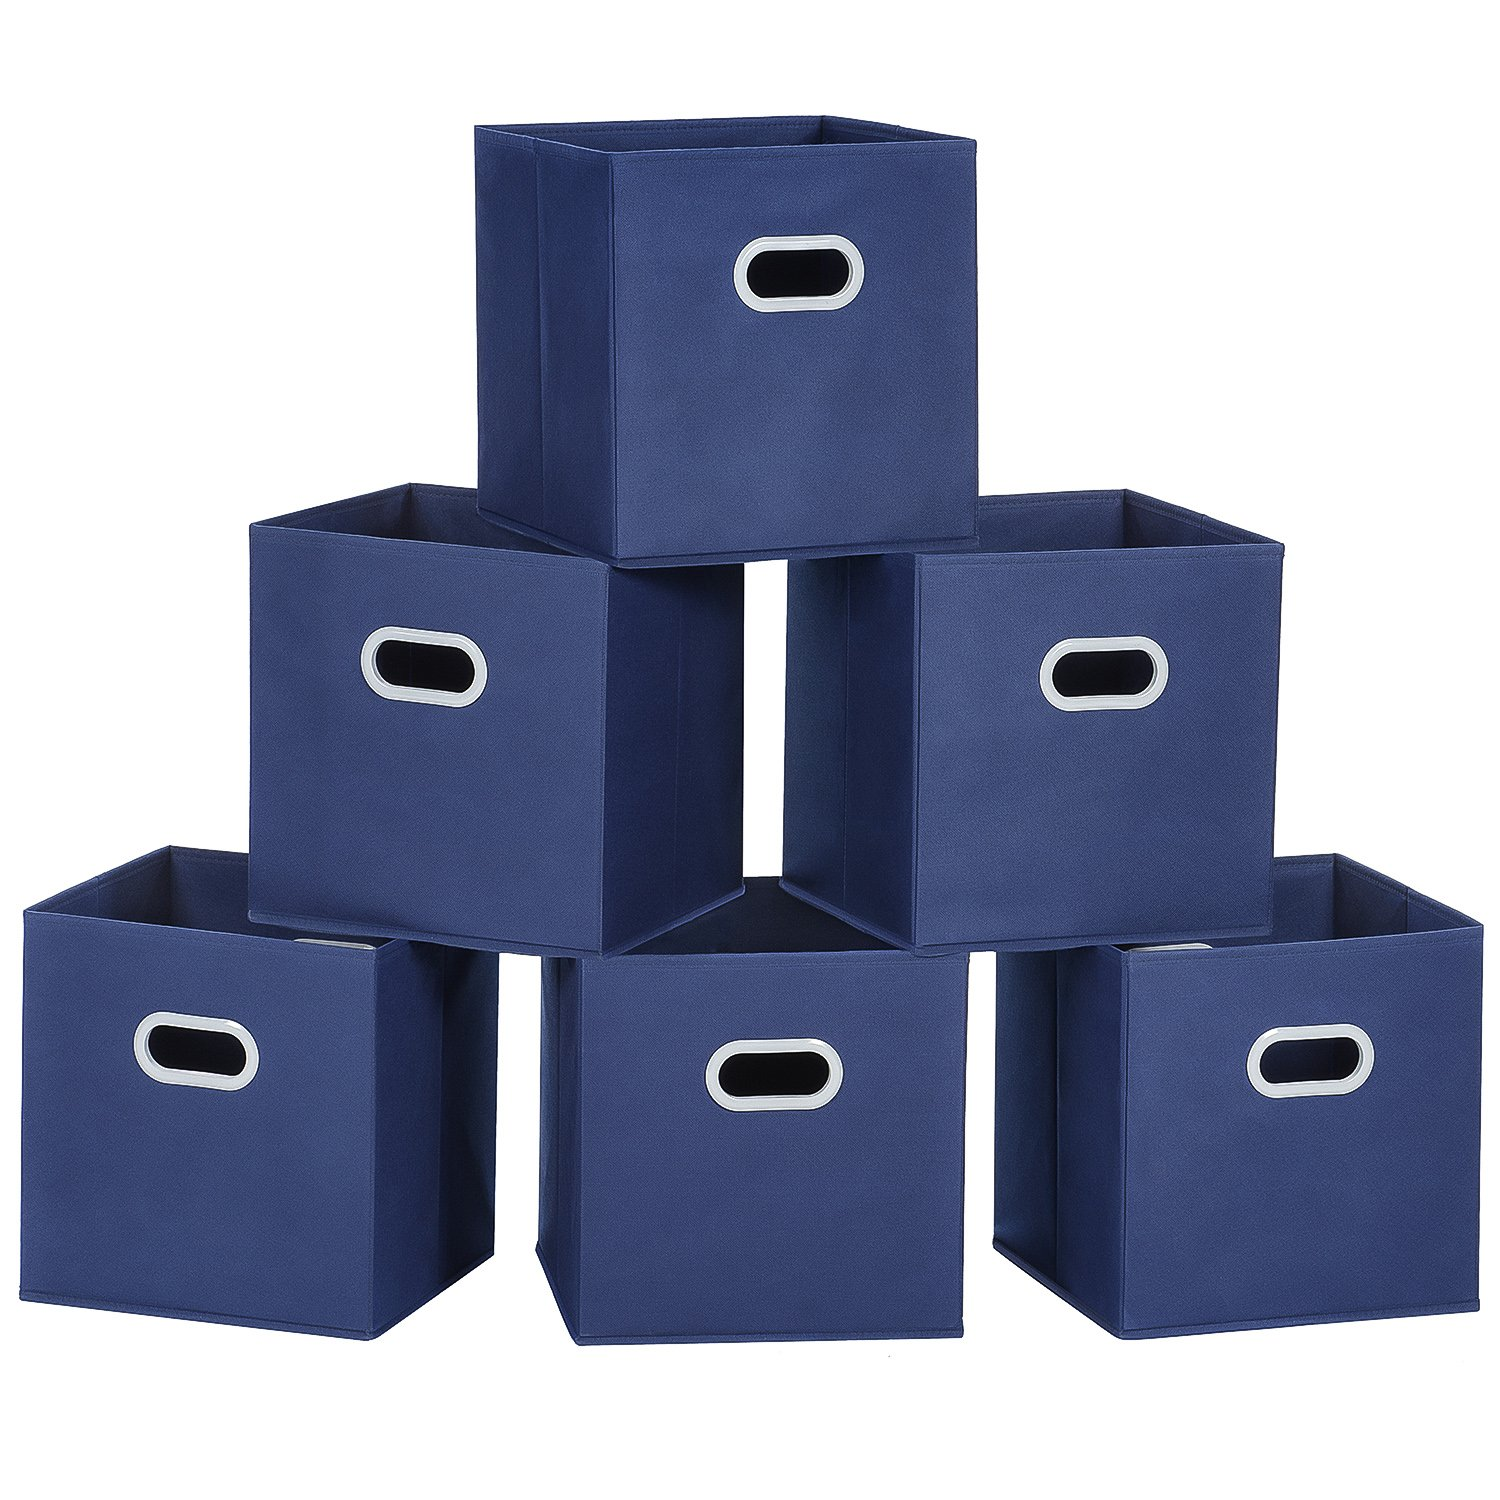 MaidMAX Cloth Storage Bins Cubes Baskets Containers with Dual Plastic Handles for Home Closet Bedroom Drawers Organizers, Flodable, Blue, Set of 6 by MaidMAX